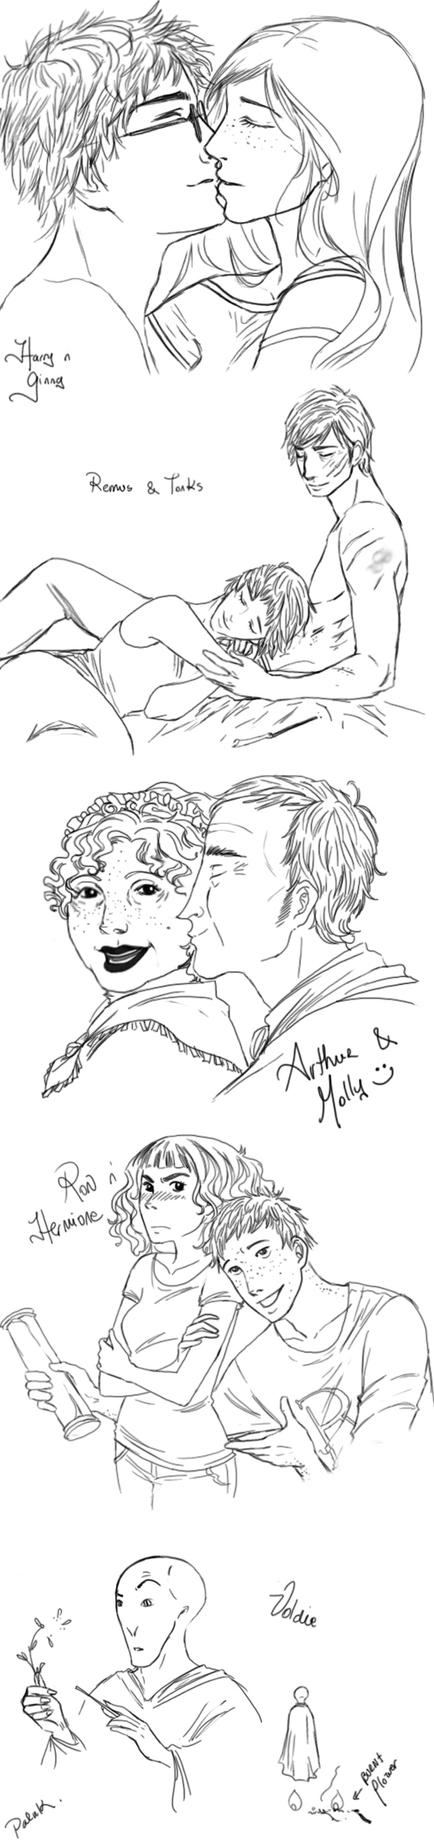 Potter couple sketches by palnk